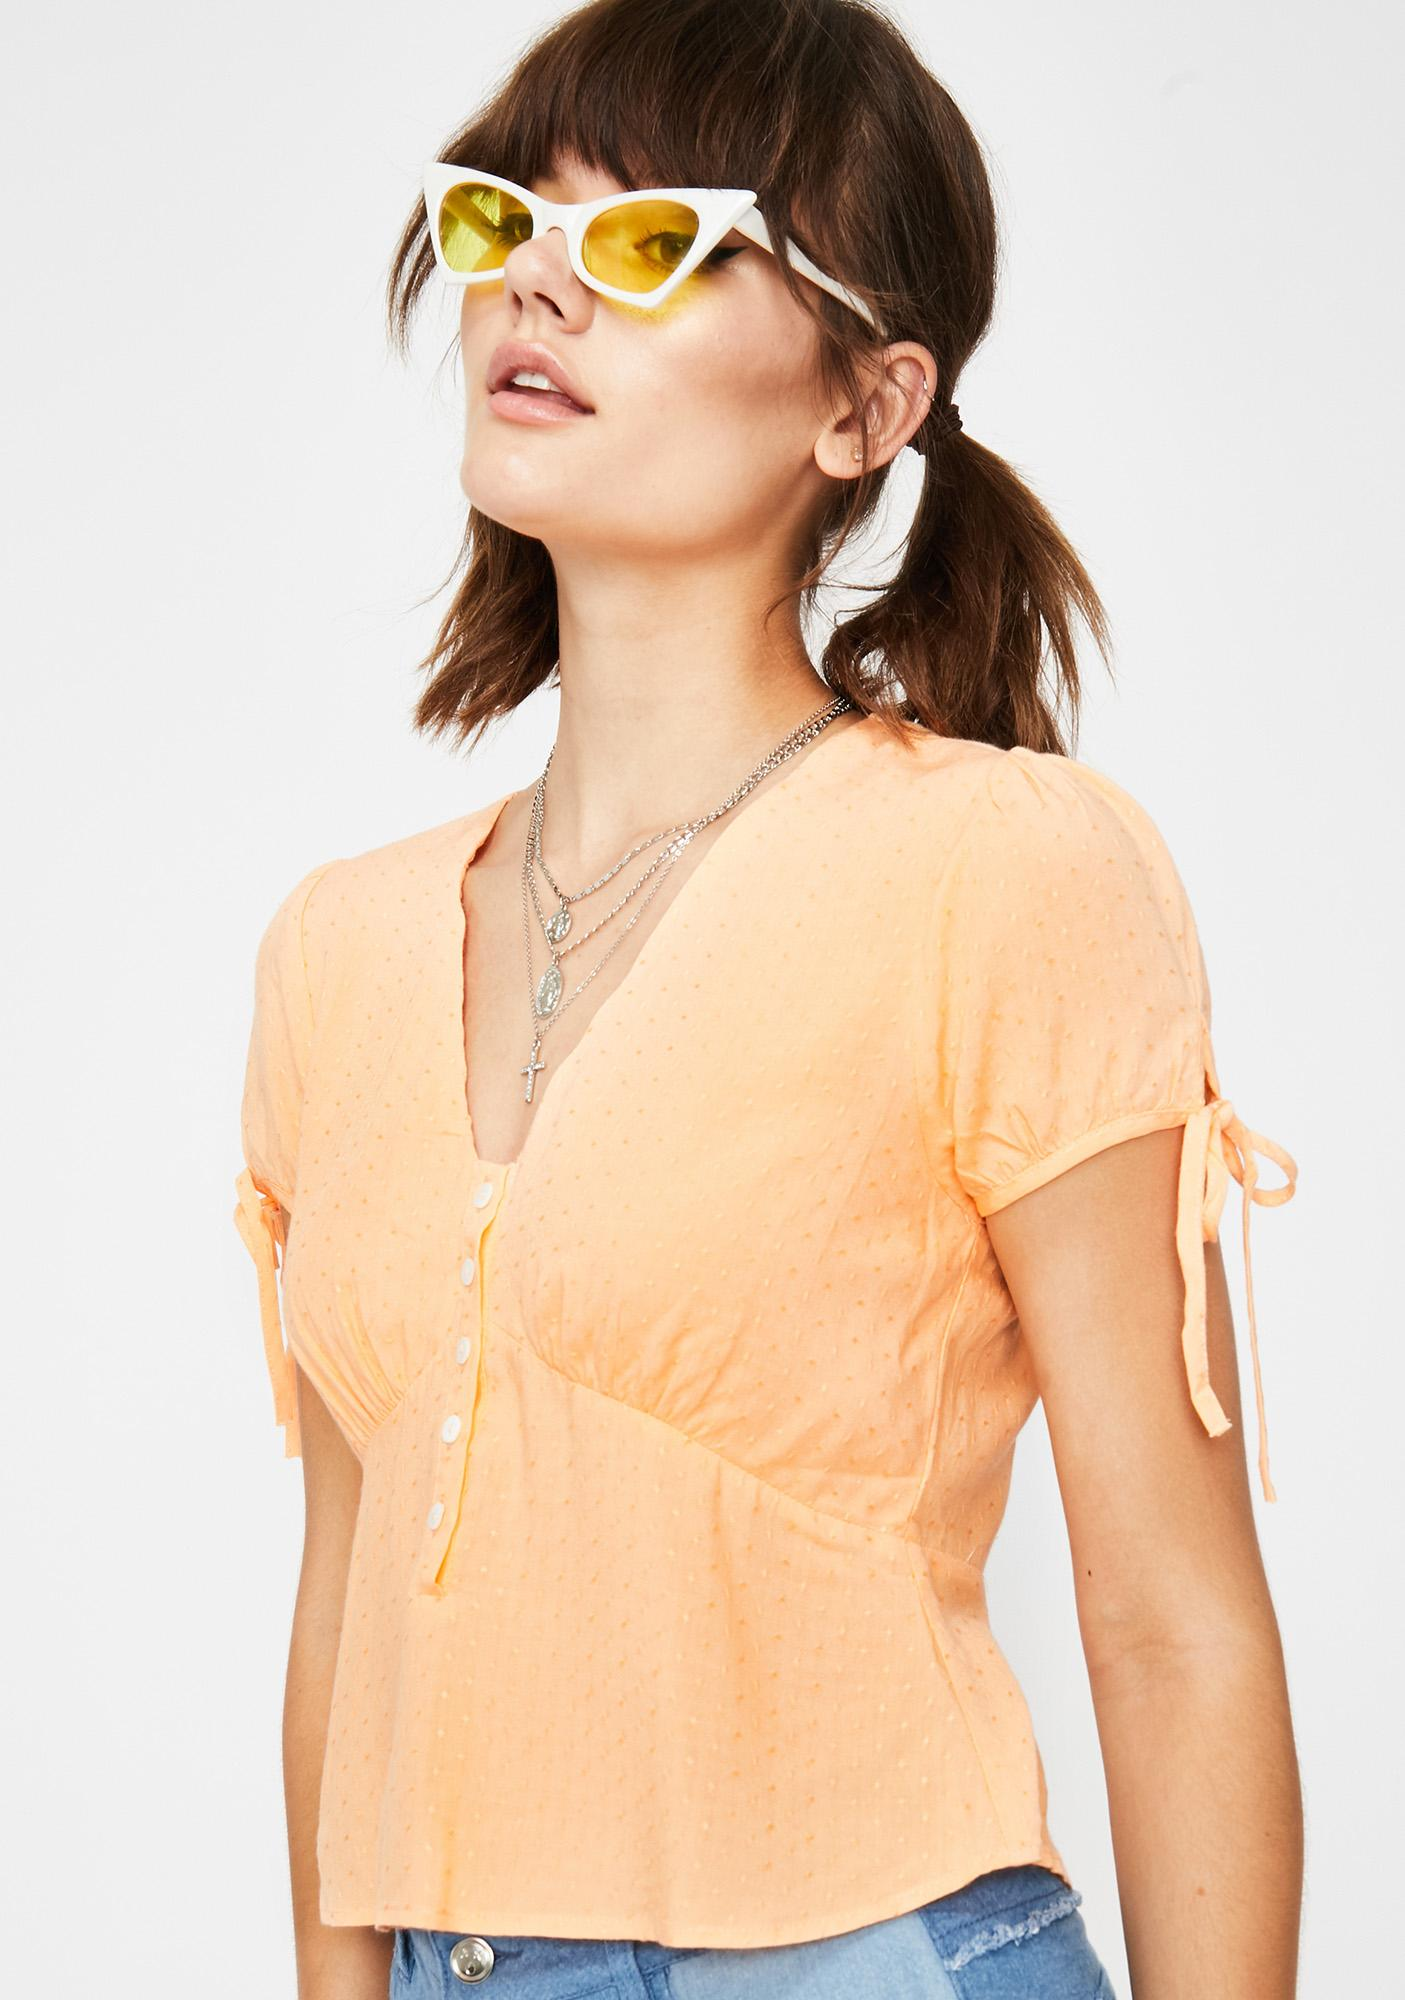 Achy Breaky Heart Button Blouse